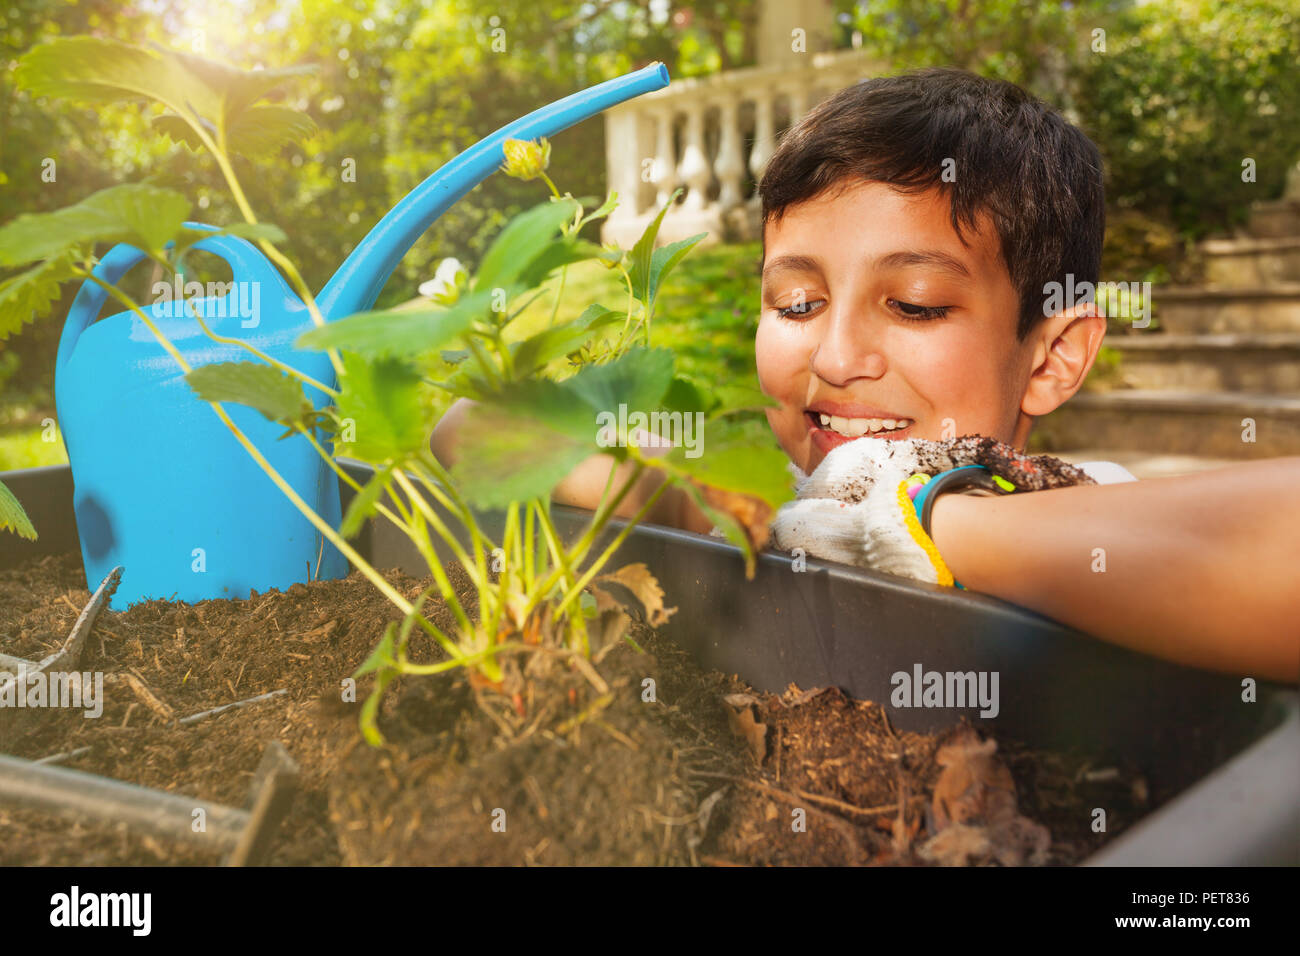 Portrait of preteen boy waiting for his strawberries plant to grow in the pot - Stock Image